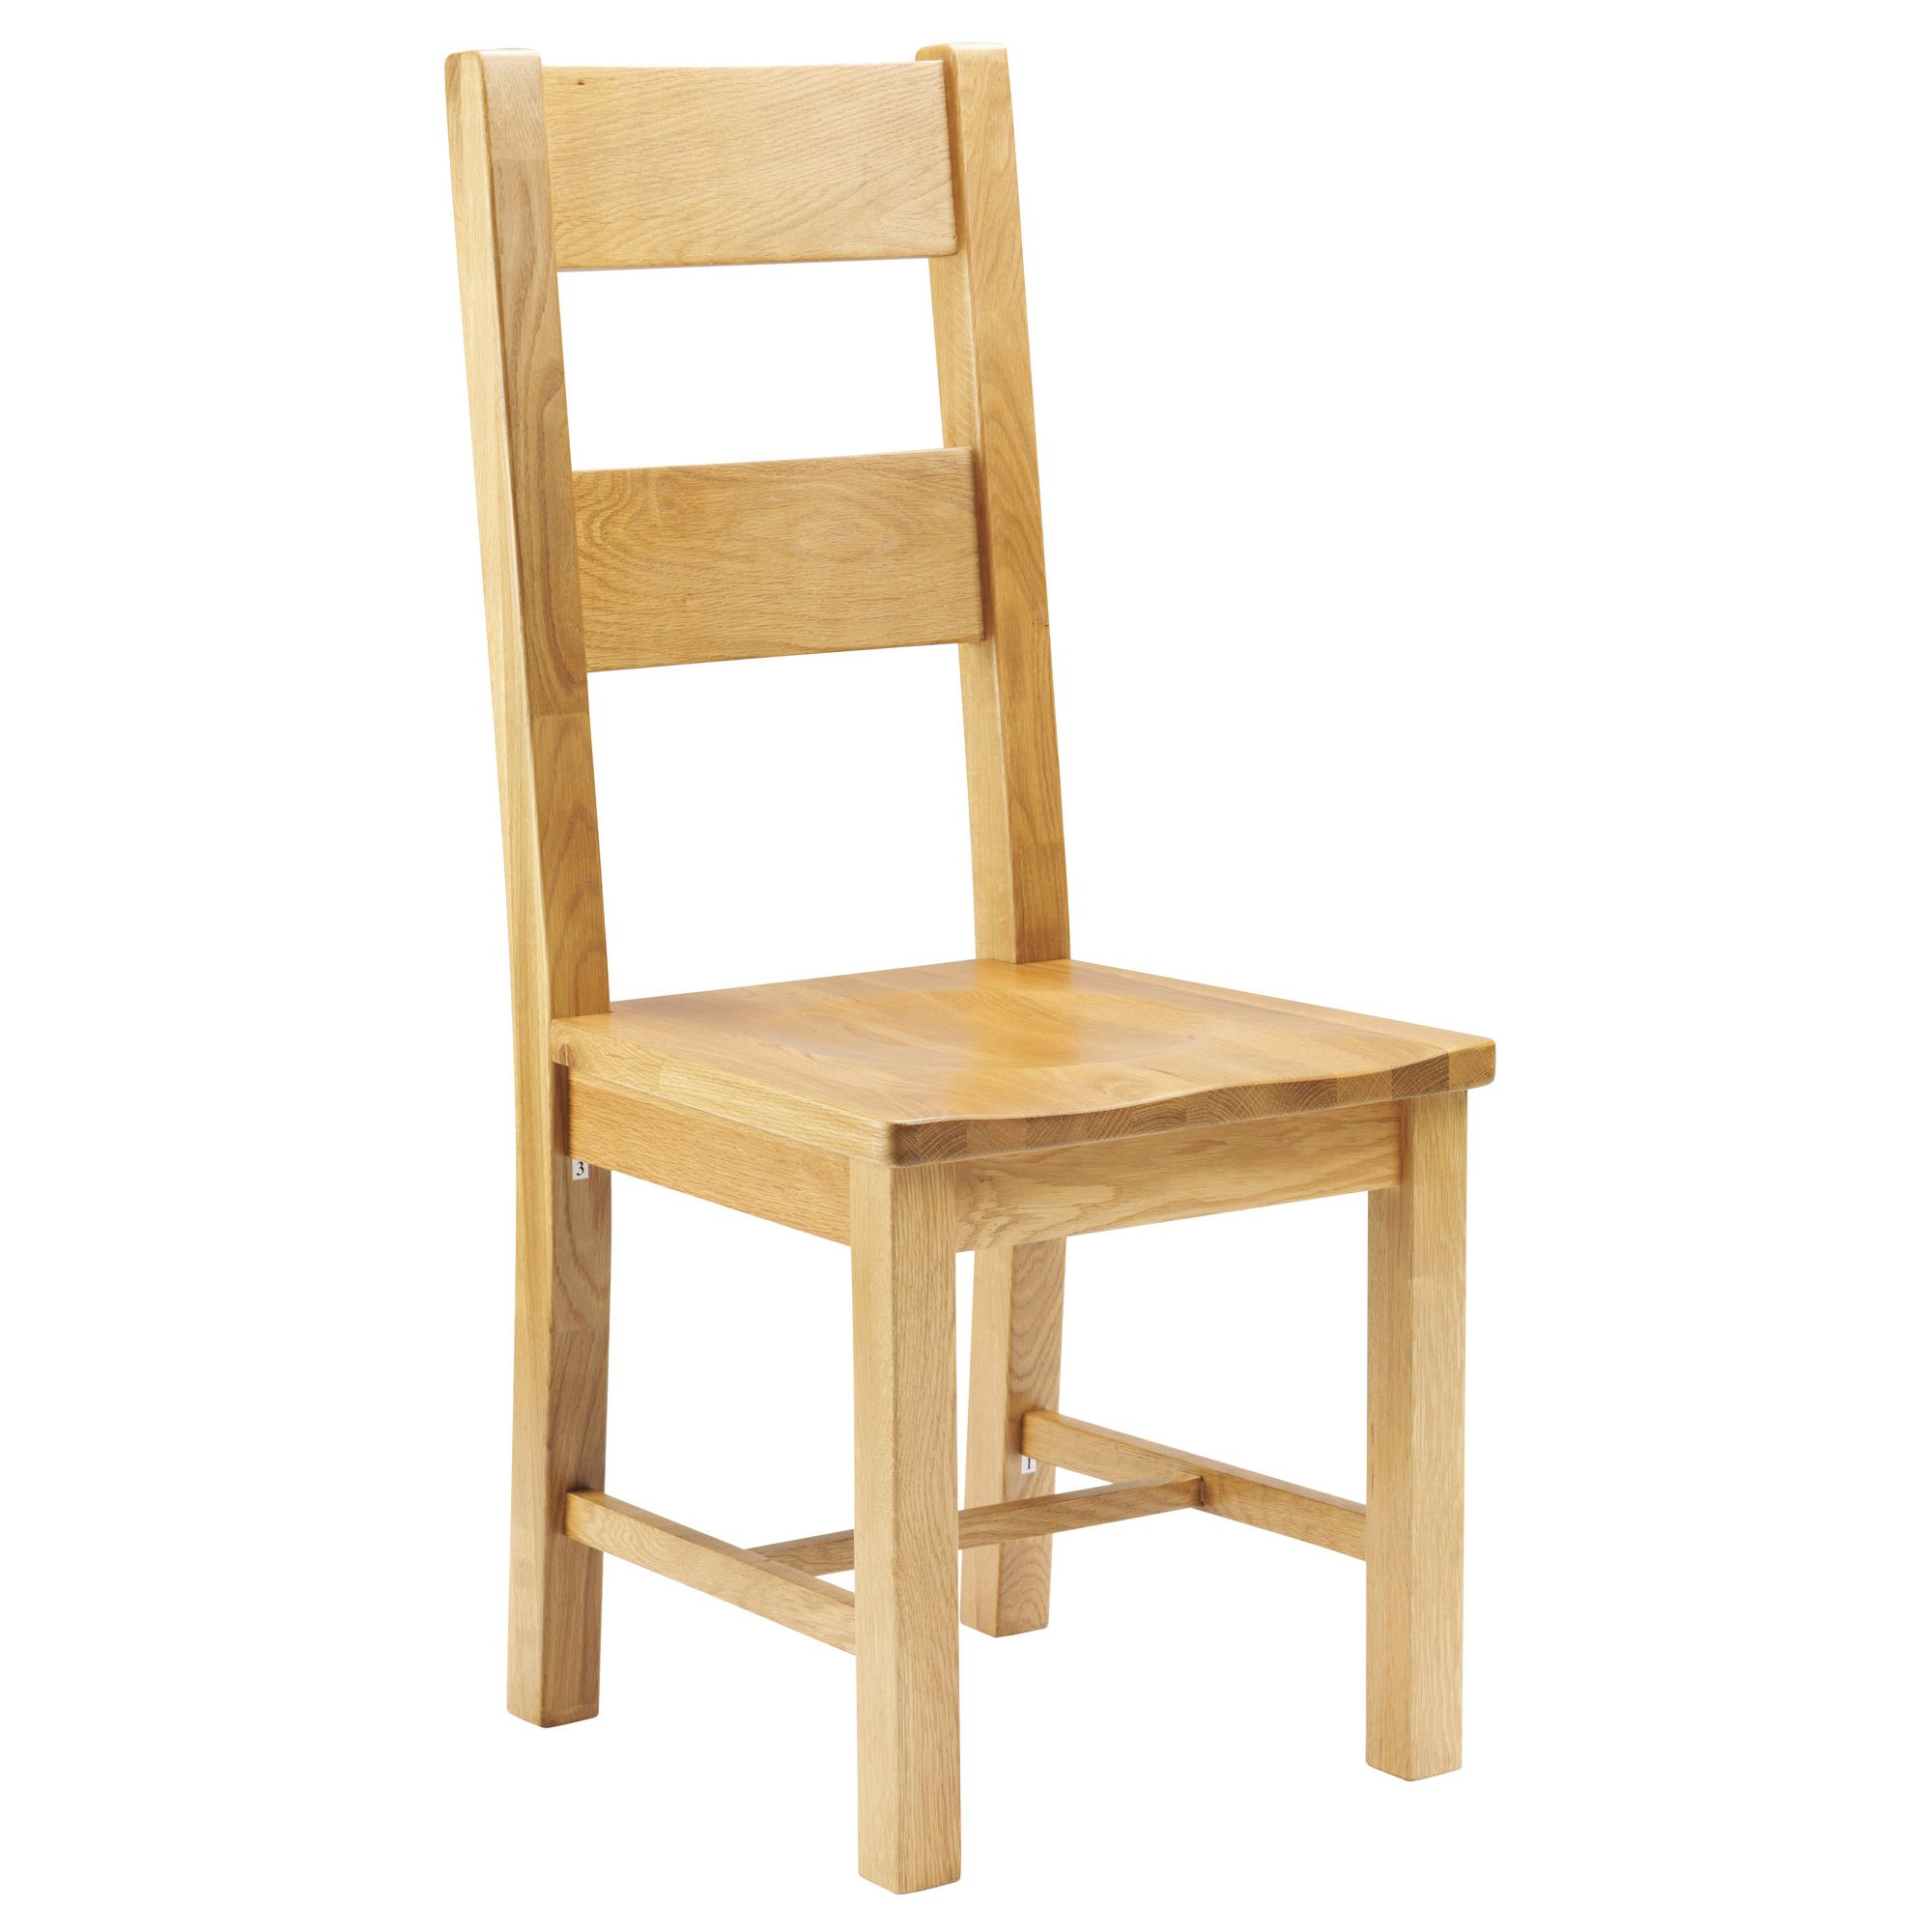 Thorndon Taunton Dining Chair with Wooden Seat in Medium Oak